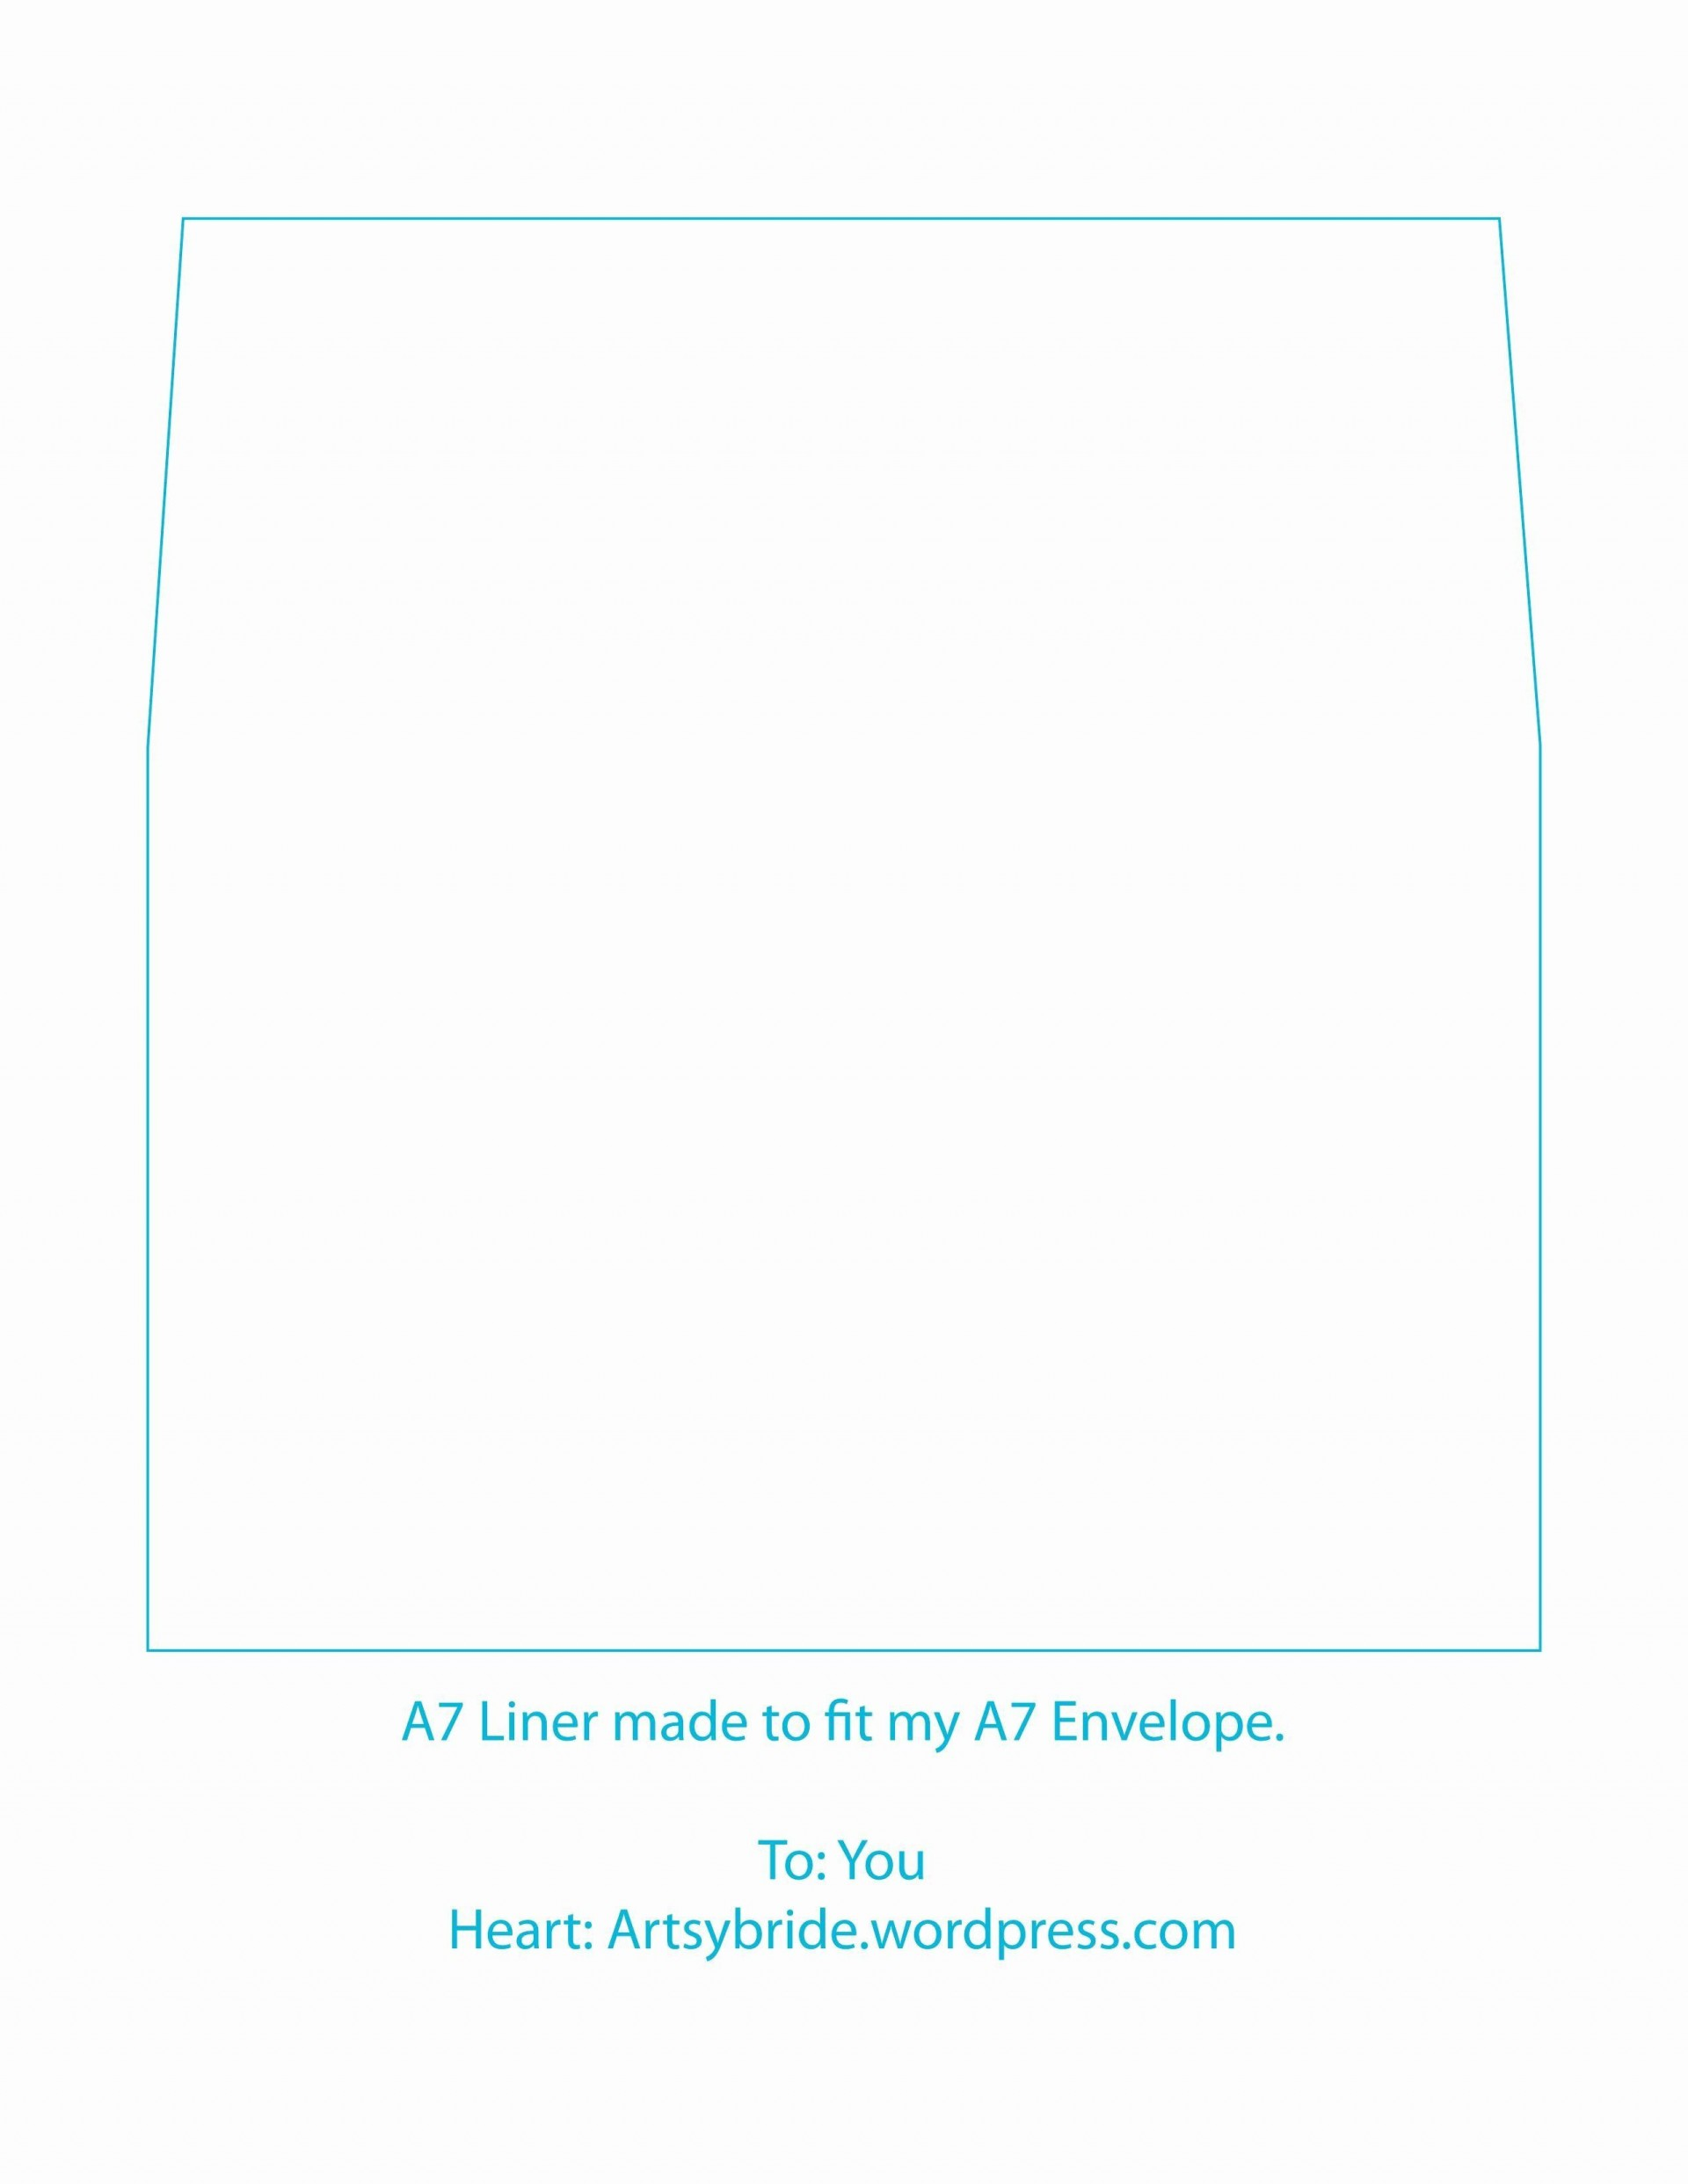 002 Awesome A7 Envelope Liner Template Idea  Printable Illustrator Free1920